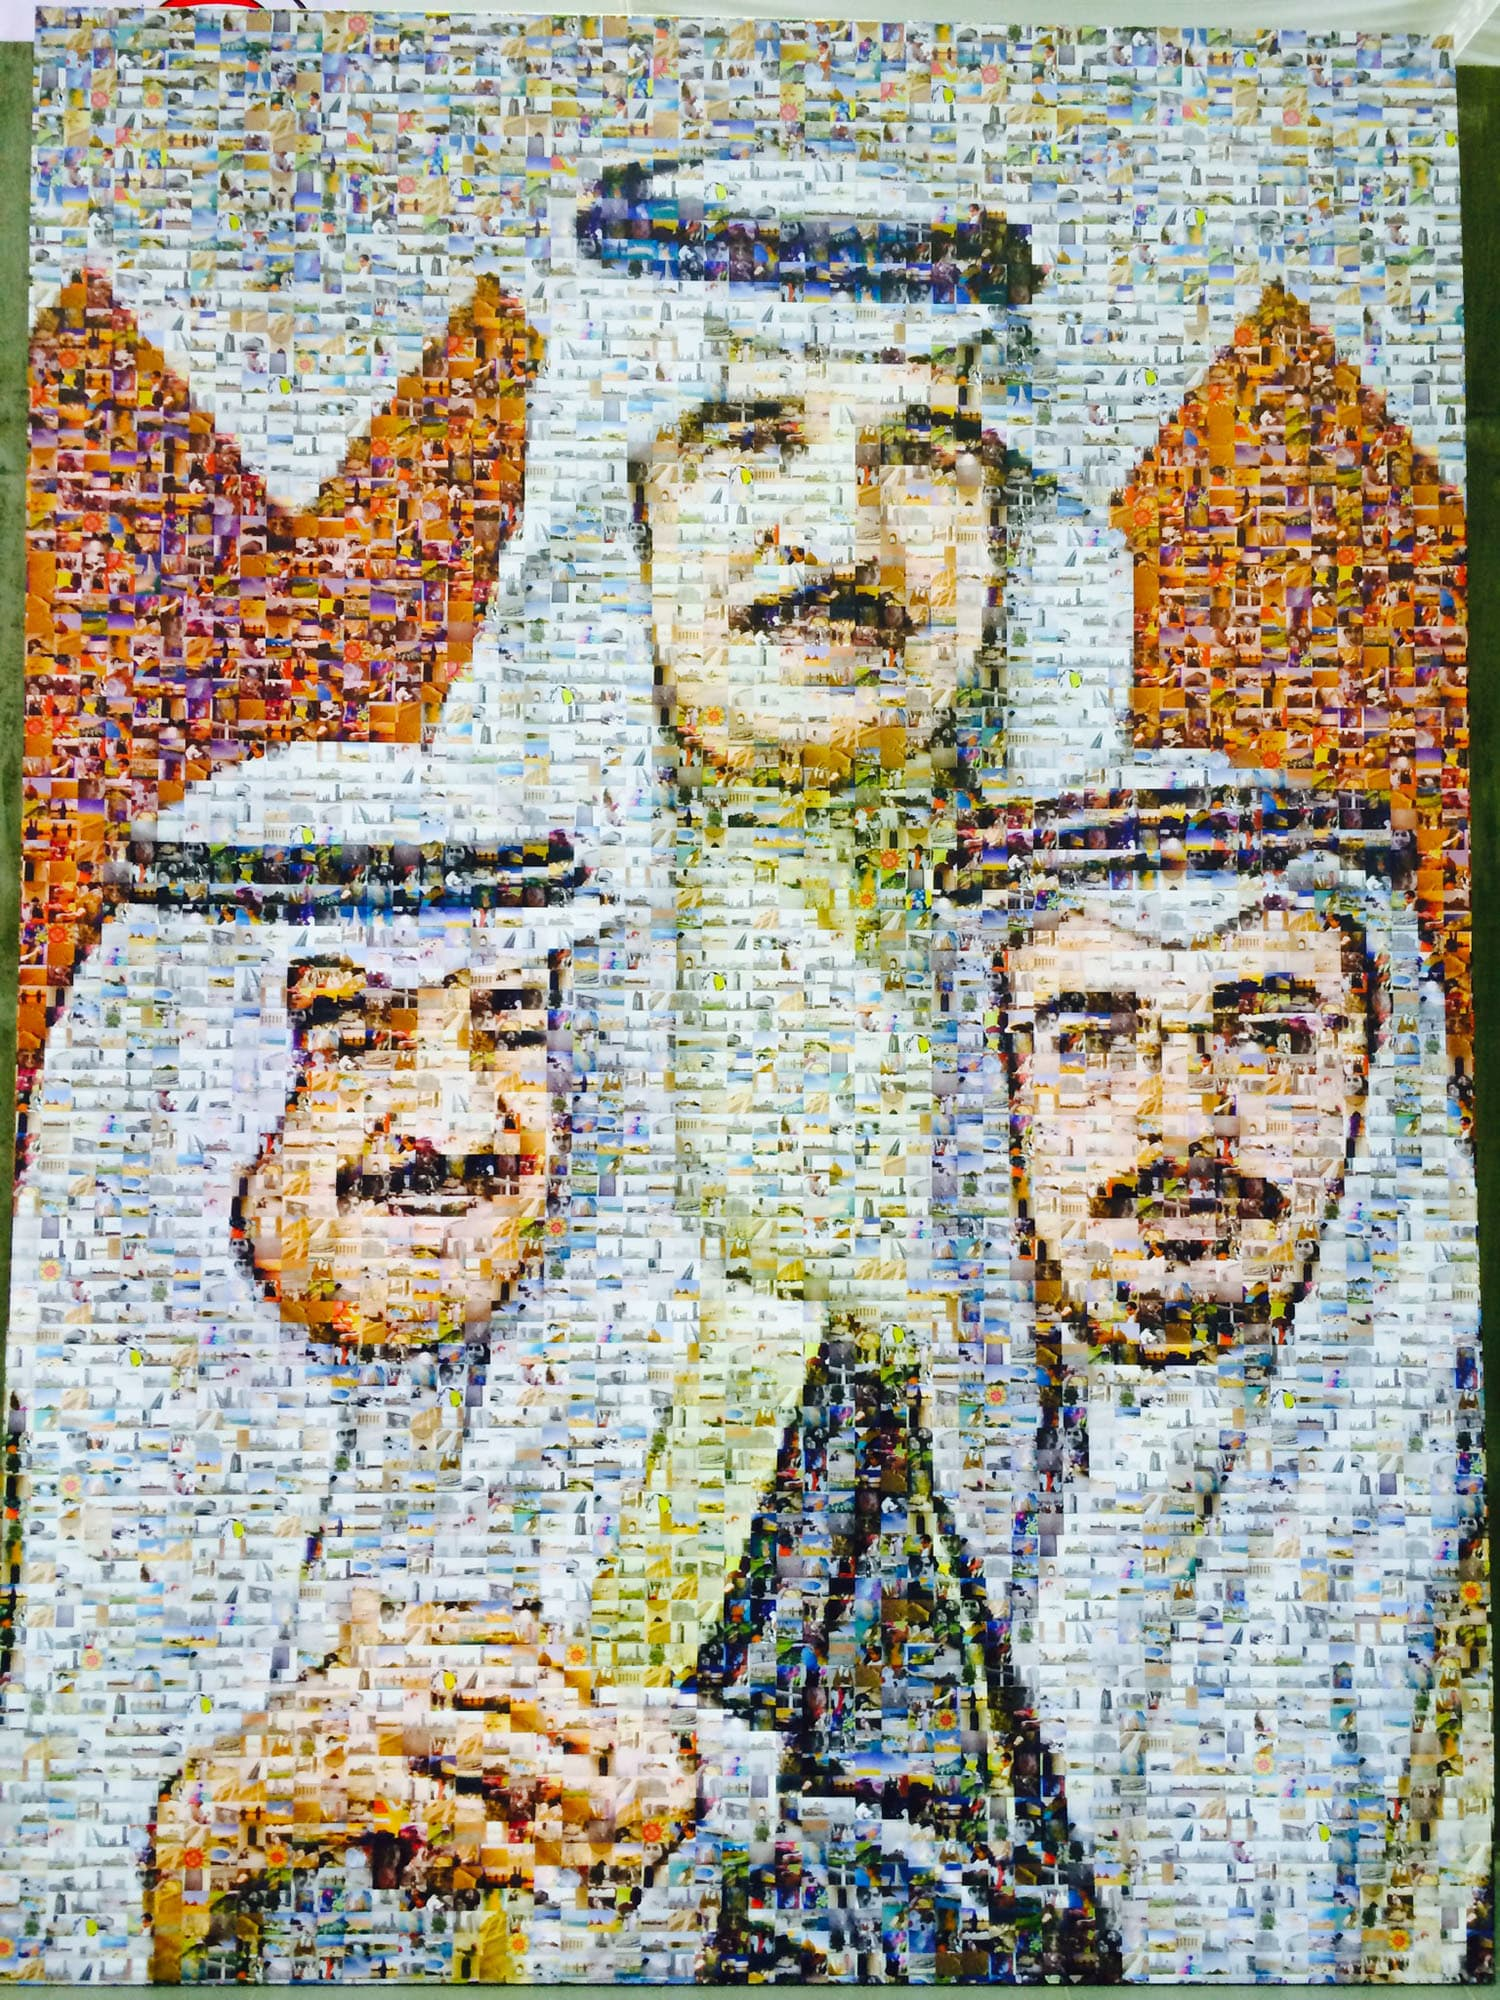 Like most monarchs in the Gulf region, portraits of the Bahraini royal family could be seen almost everywhere.